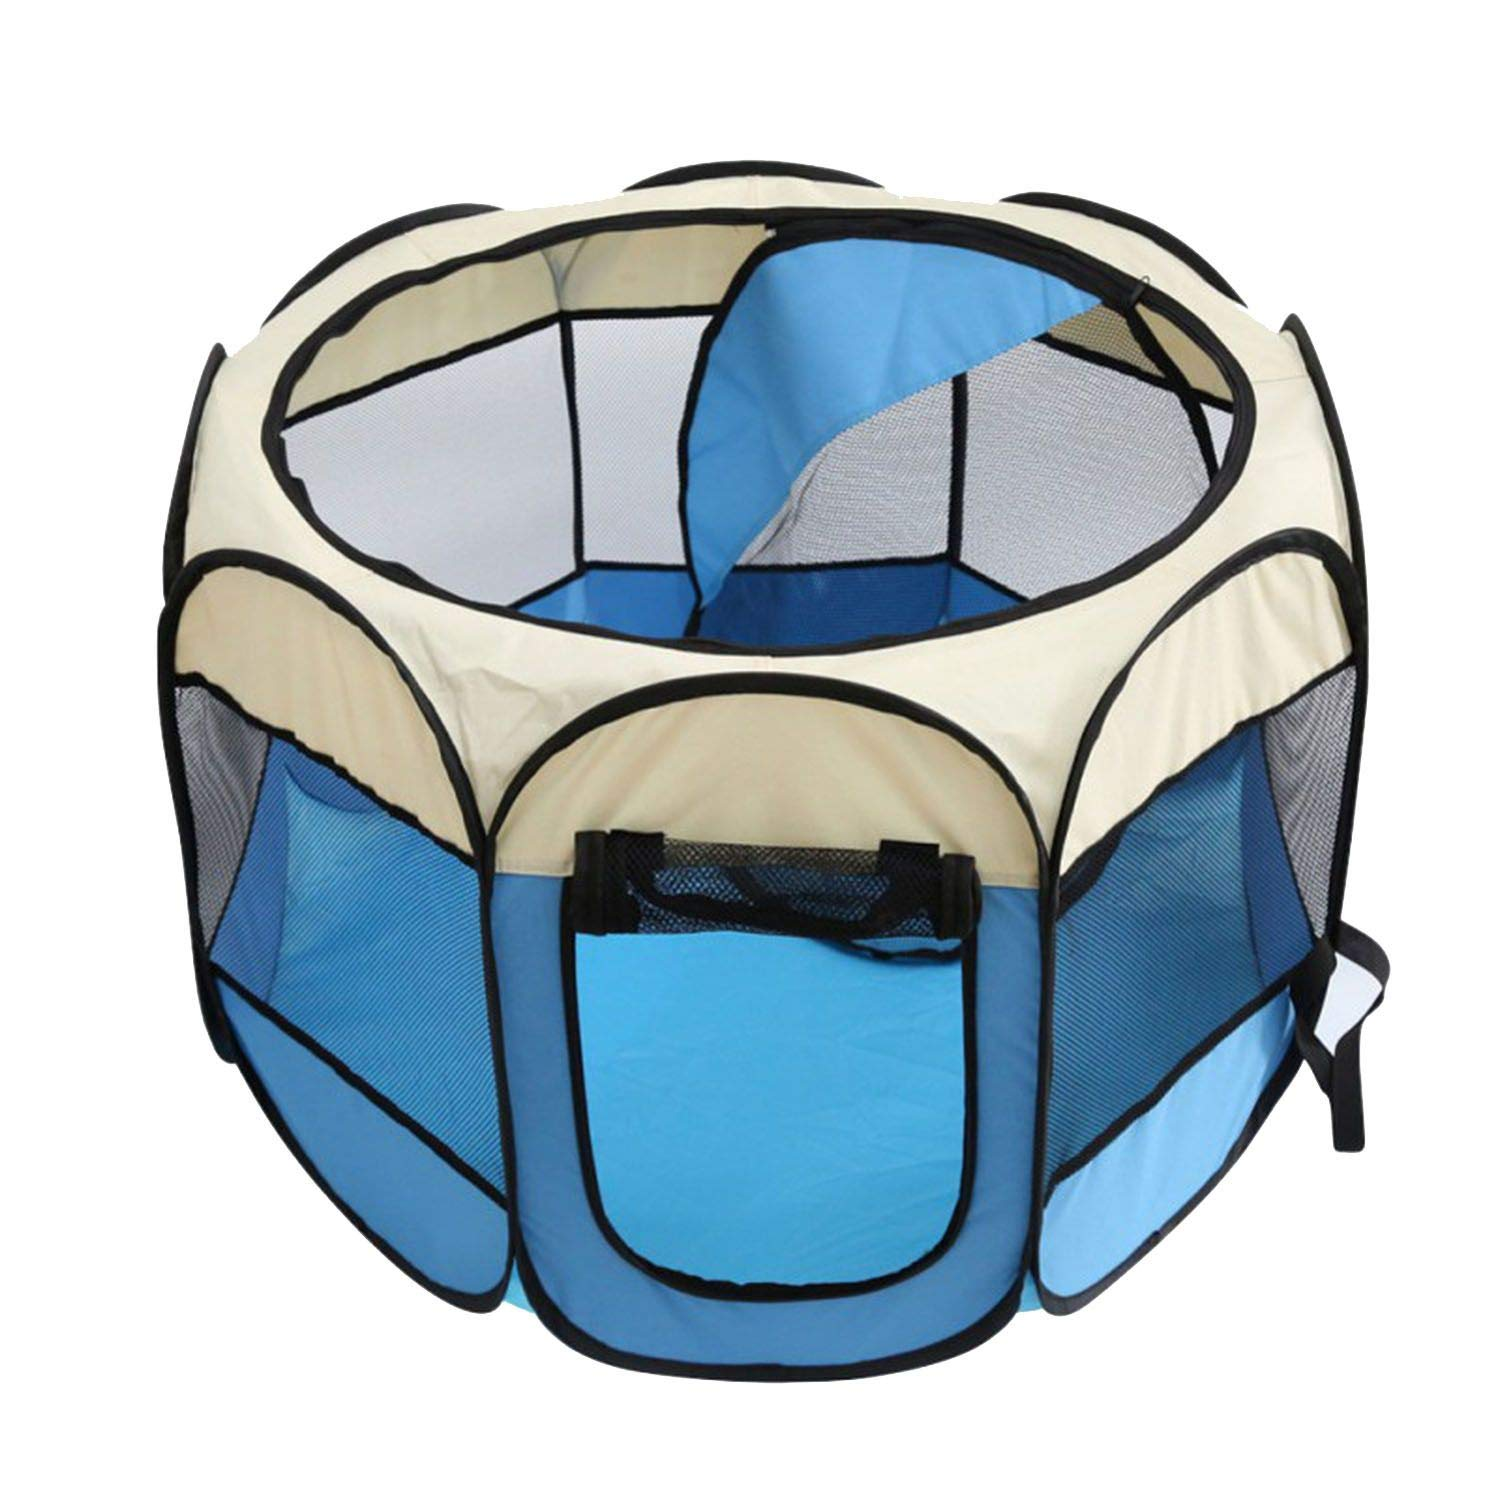 bluee 727245cm bluee 727245cm Portable Folding Pet Tent Dog House Cage Dog Cat Tent Playpen Puppy Kennel Fence Outdoor Supplies,bluee,72  72  45cm